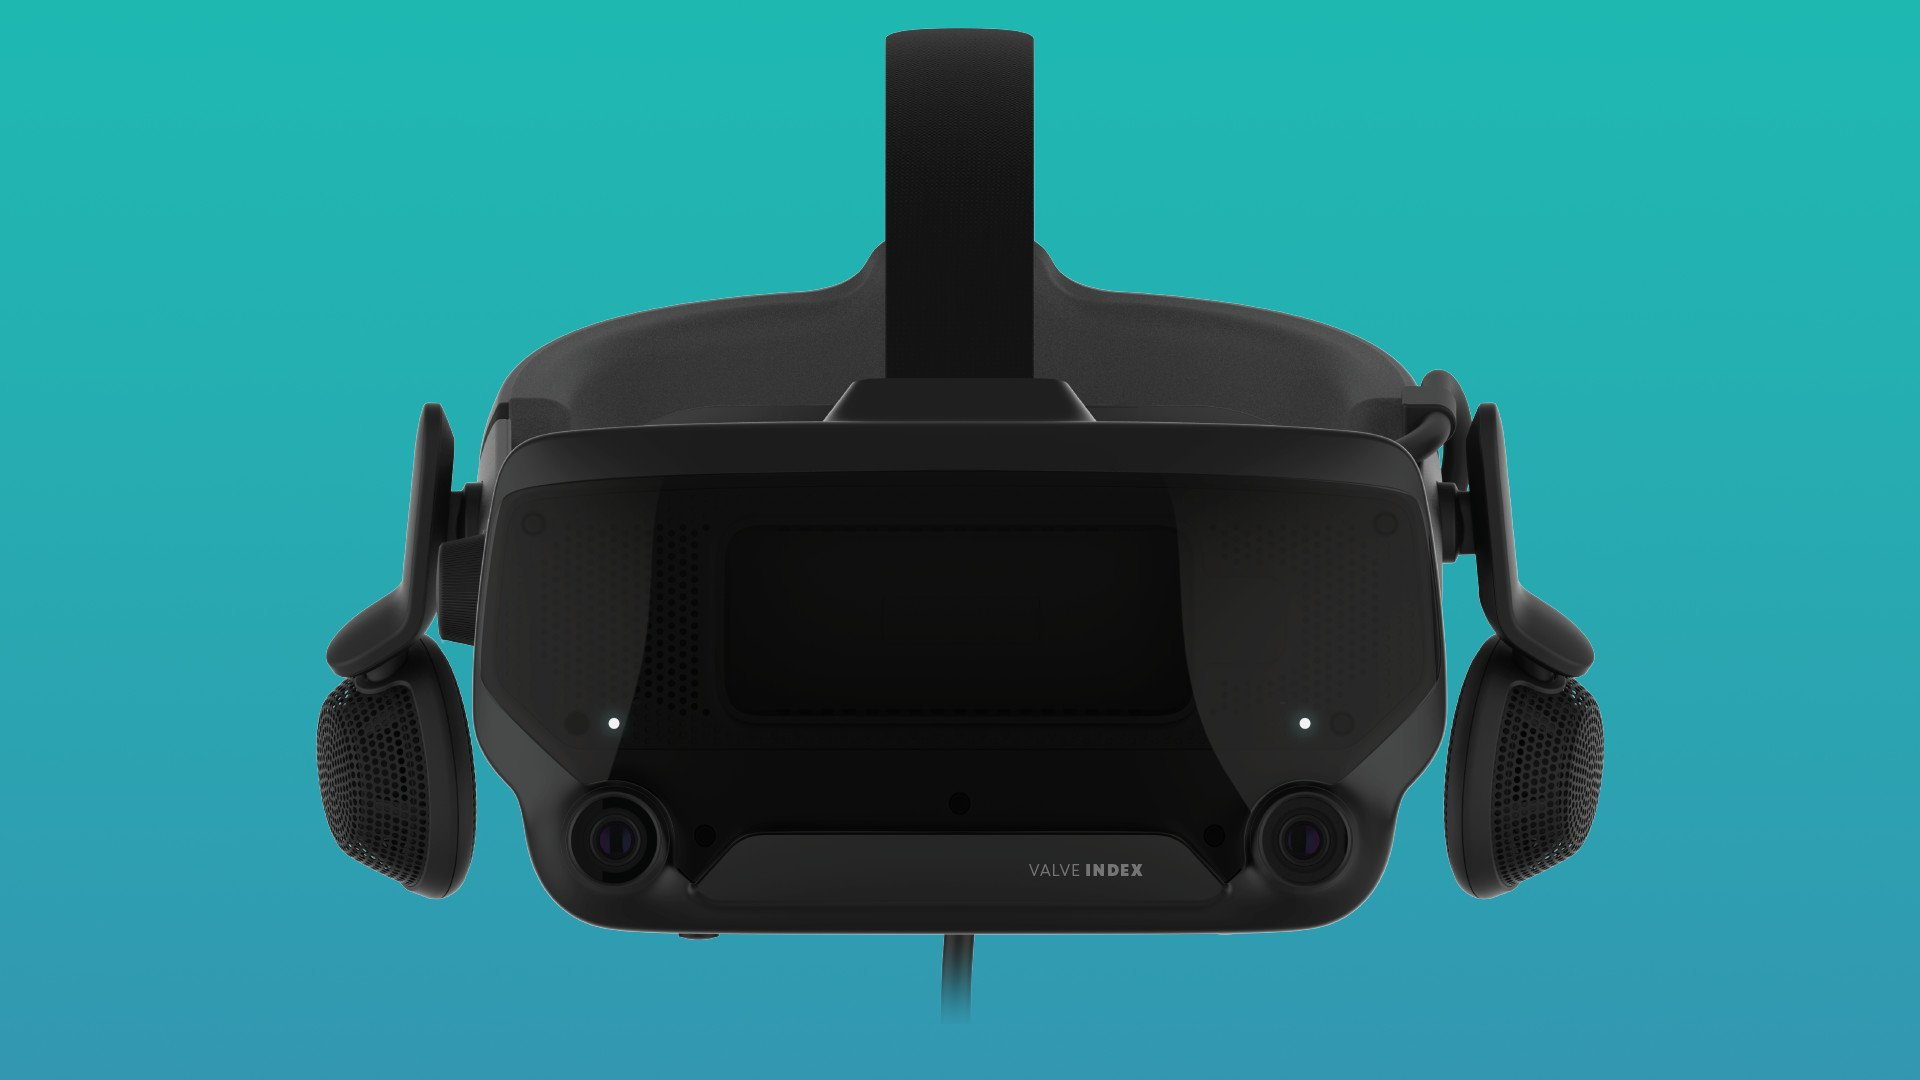 Valve Index VR Set to Launch in June 2019